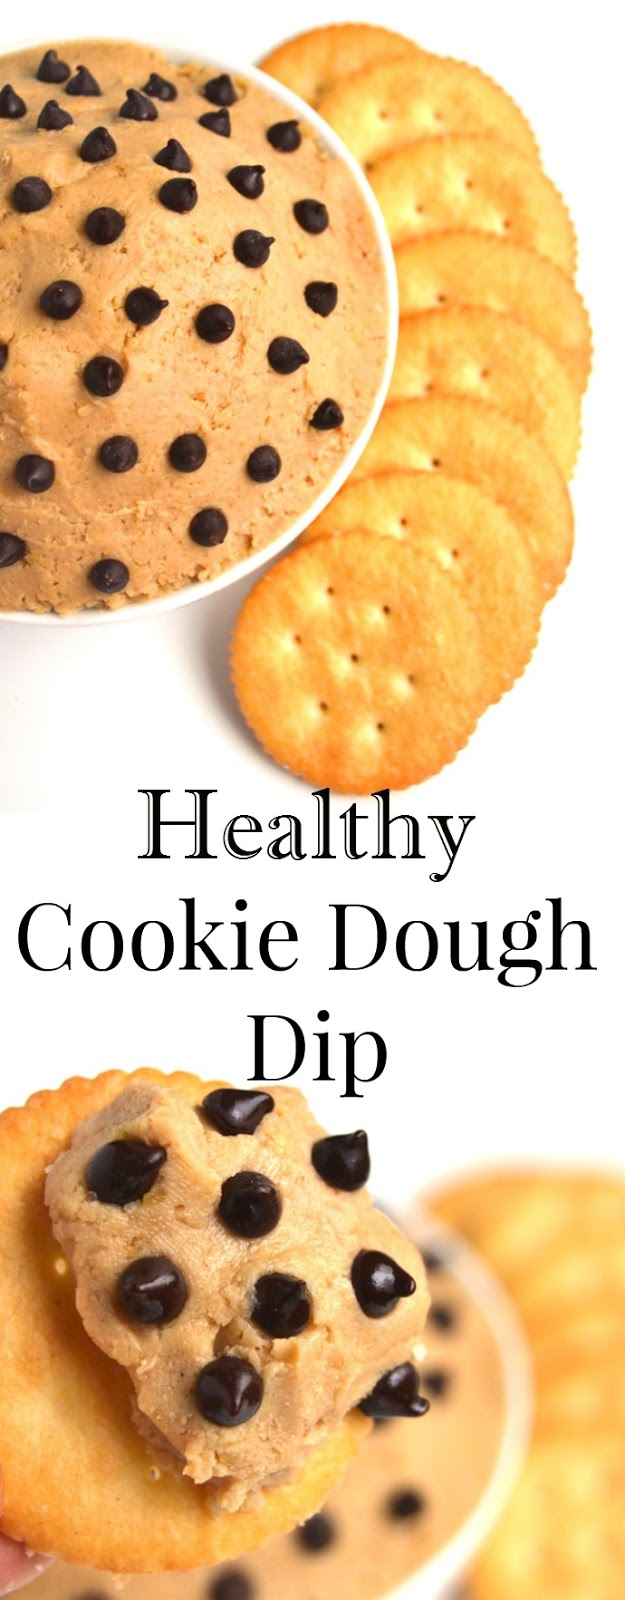 Healthy Cookie Dough Dip has just 5 ingredients and takes 5 minutes to make. A much healthier cookie dough option the whole family will love that is made with a secret ingredient- chickpeas! www.nutritionistreviews.com